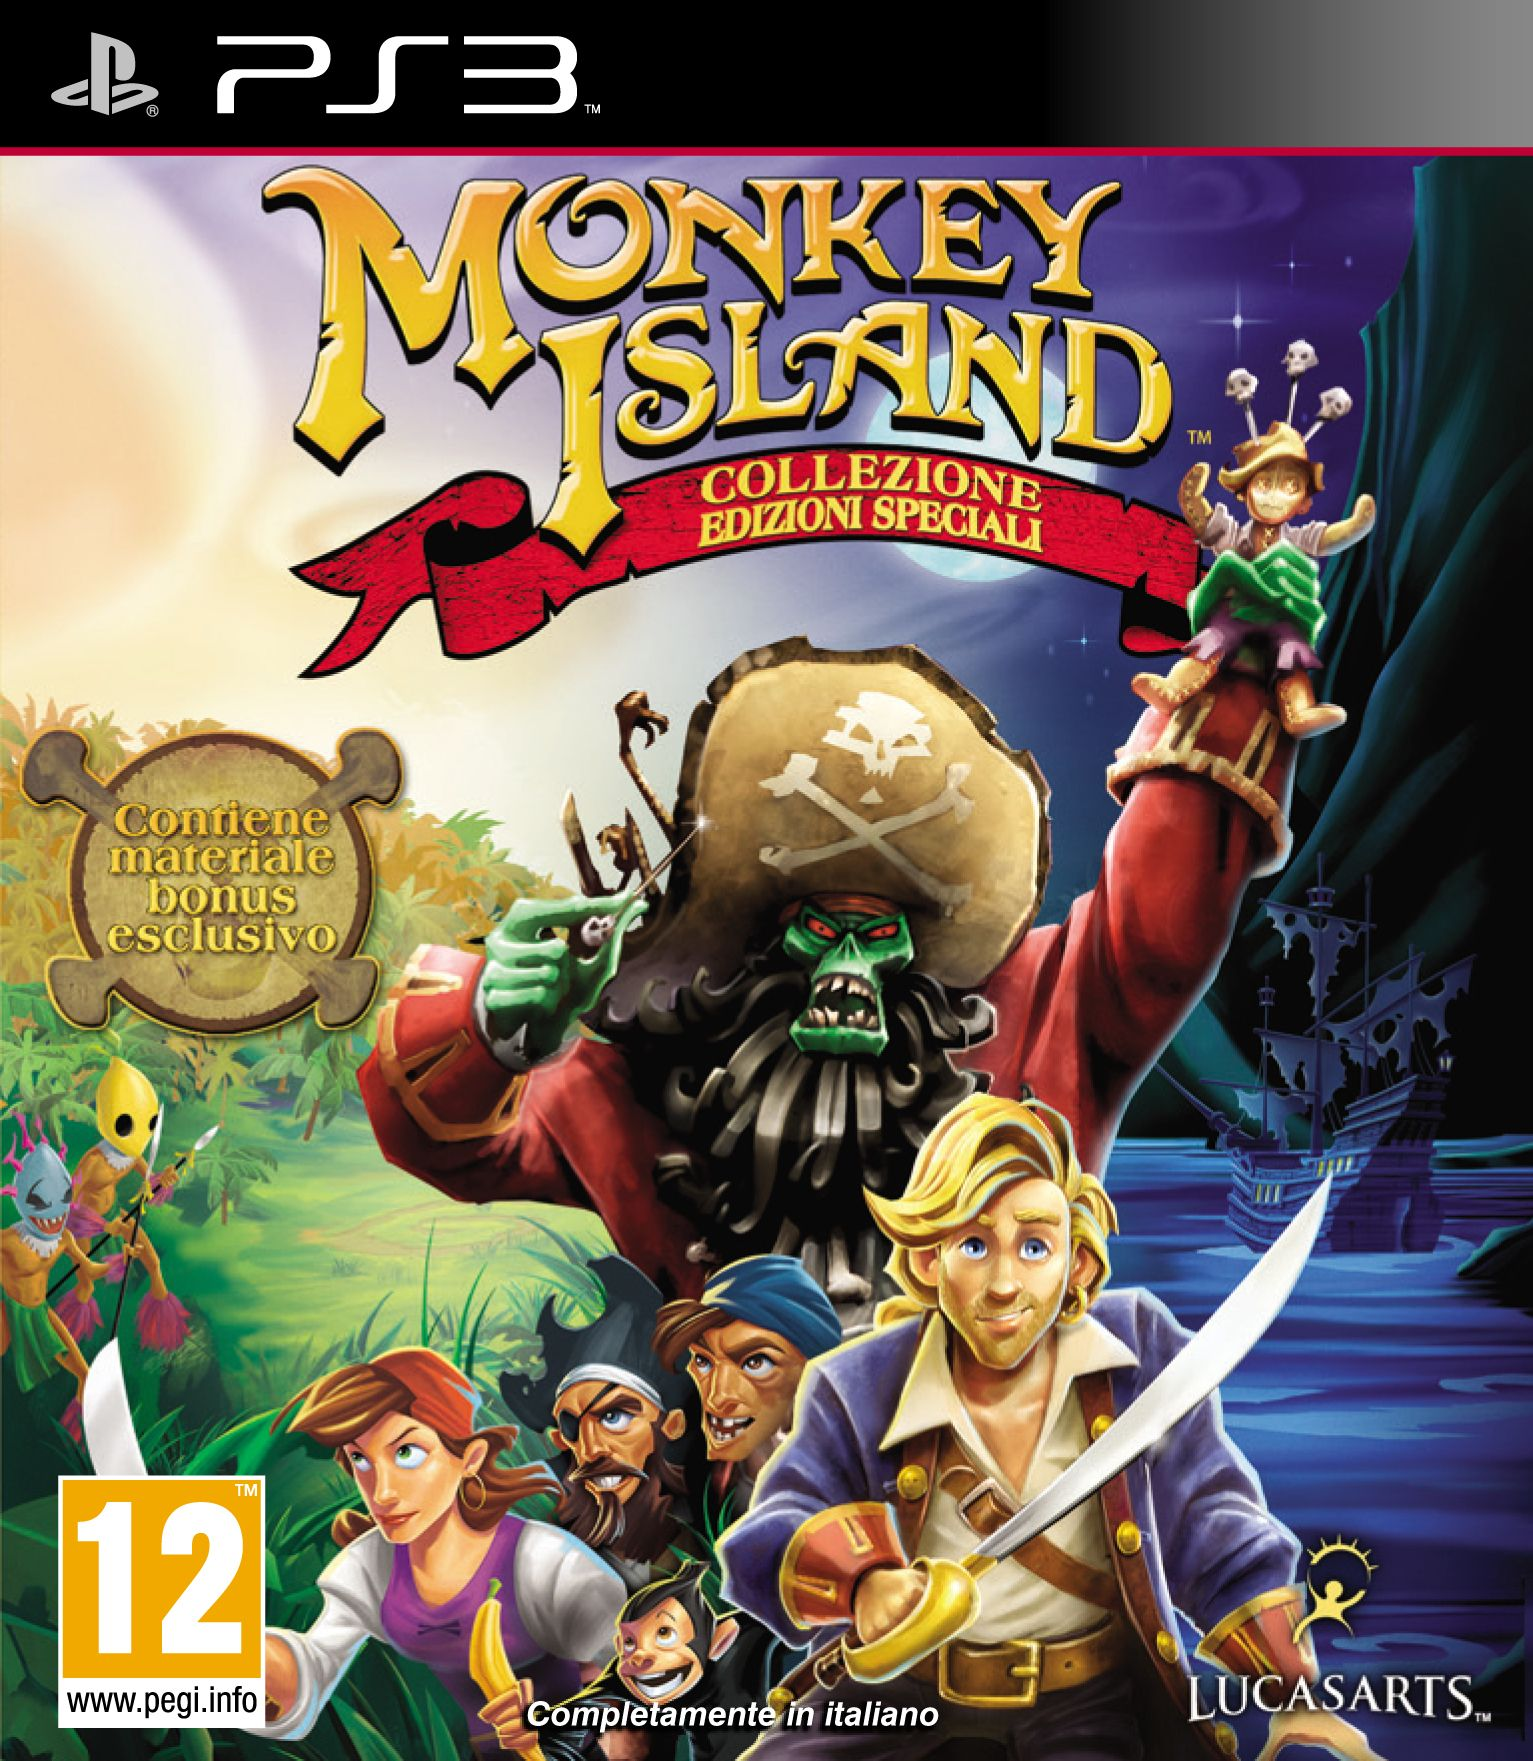 monkeyisland_packshot